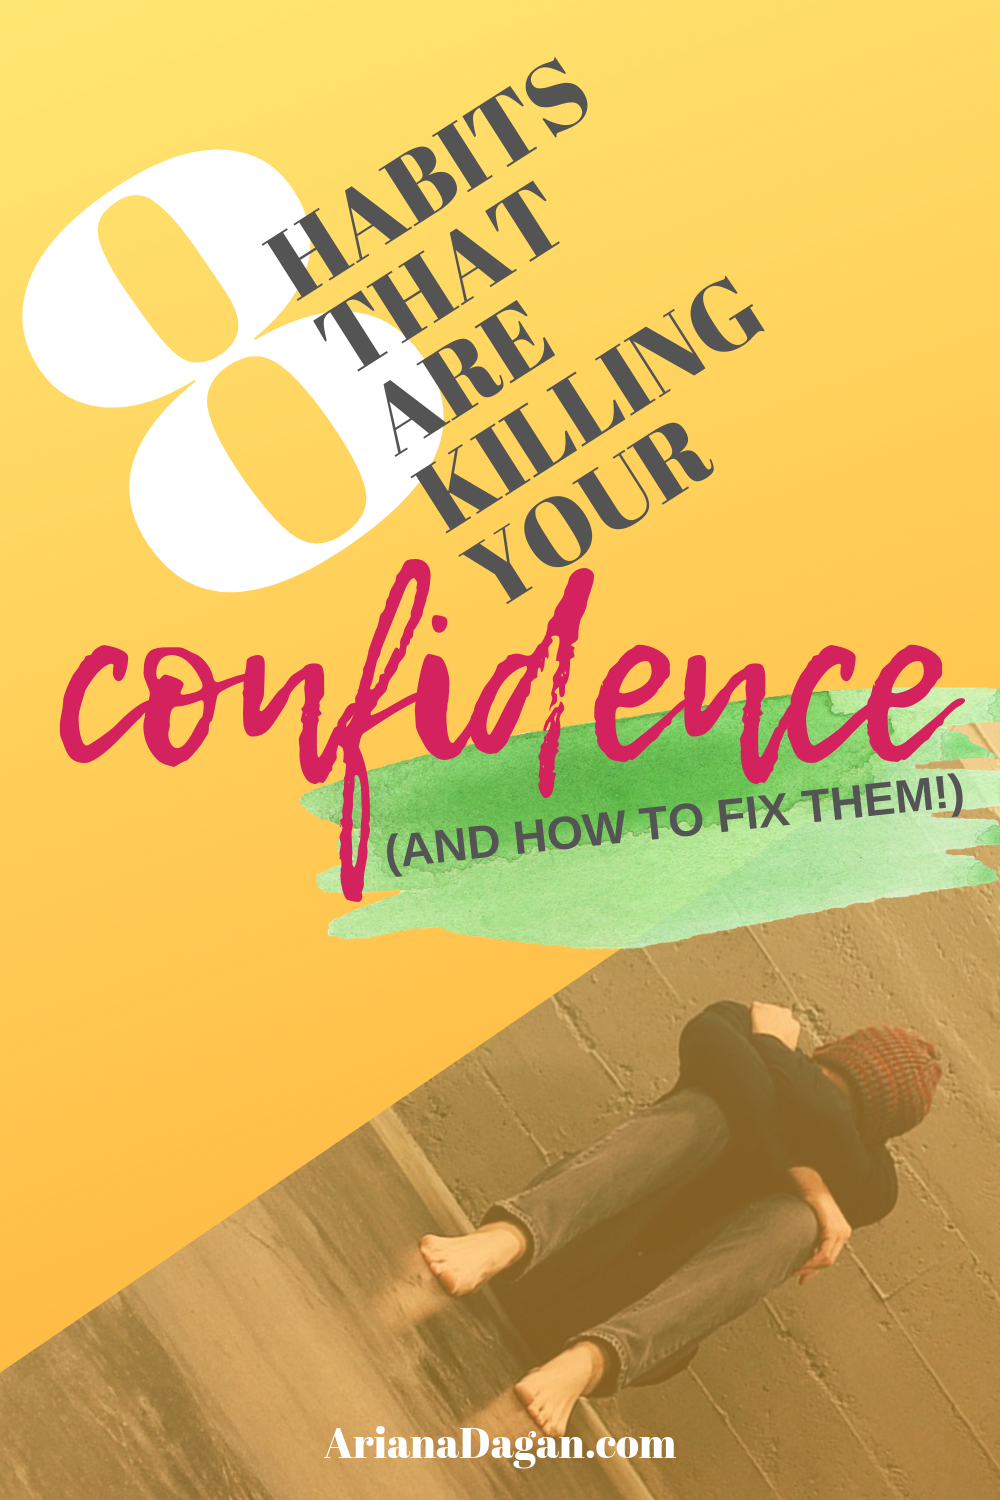 8 Habits That Are Killing Your Confidence by Ariana Dagan